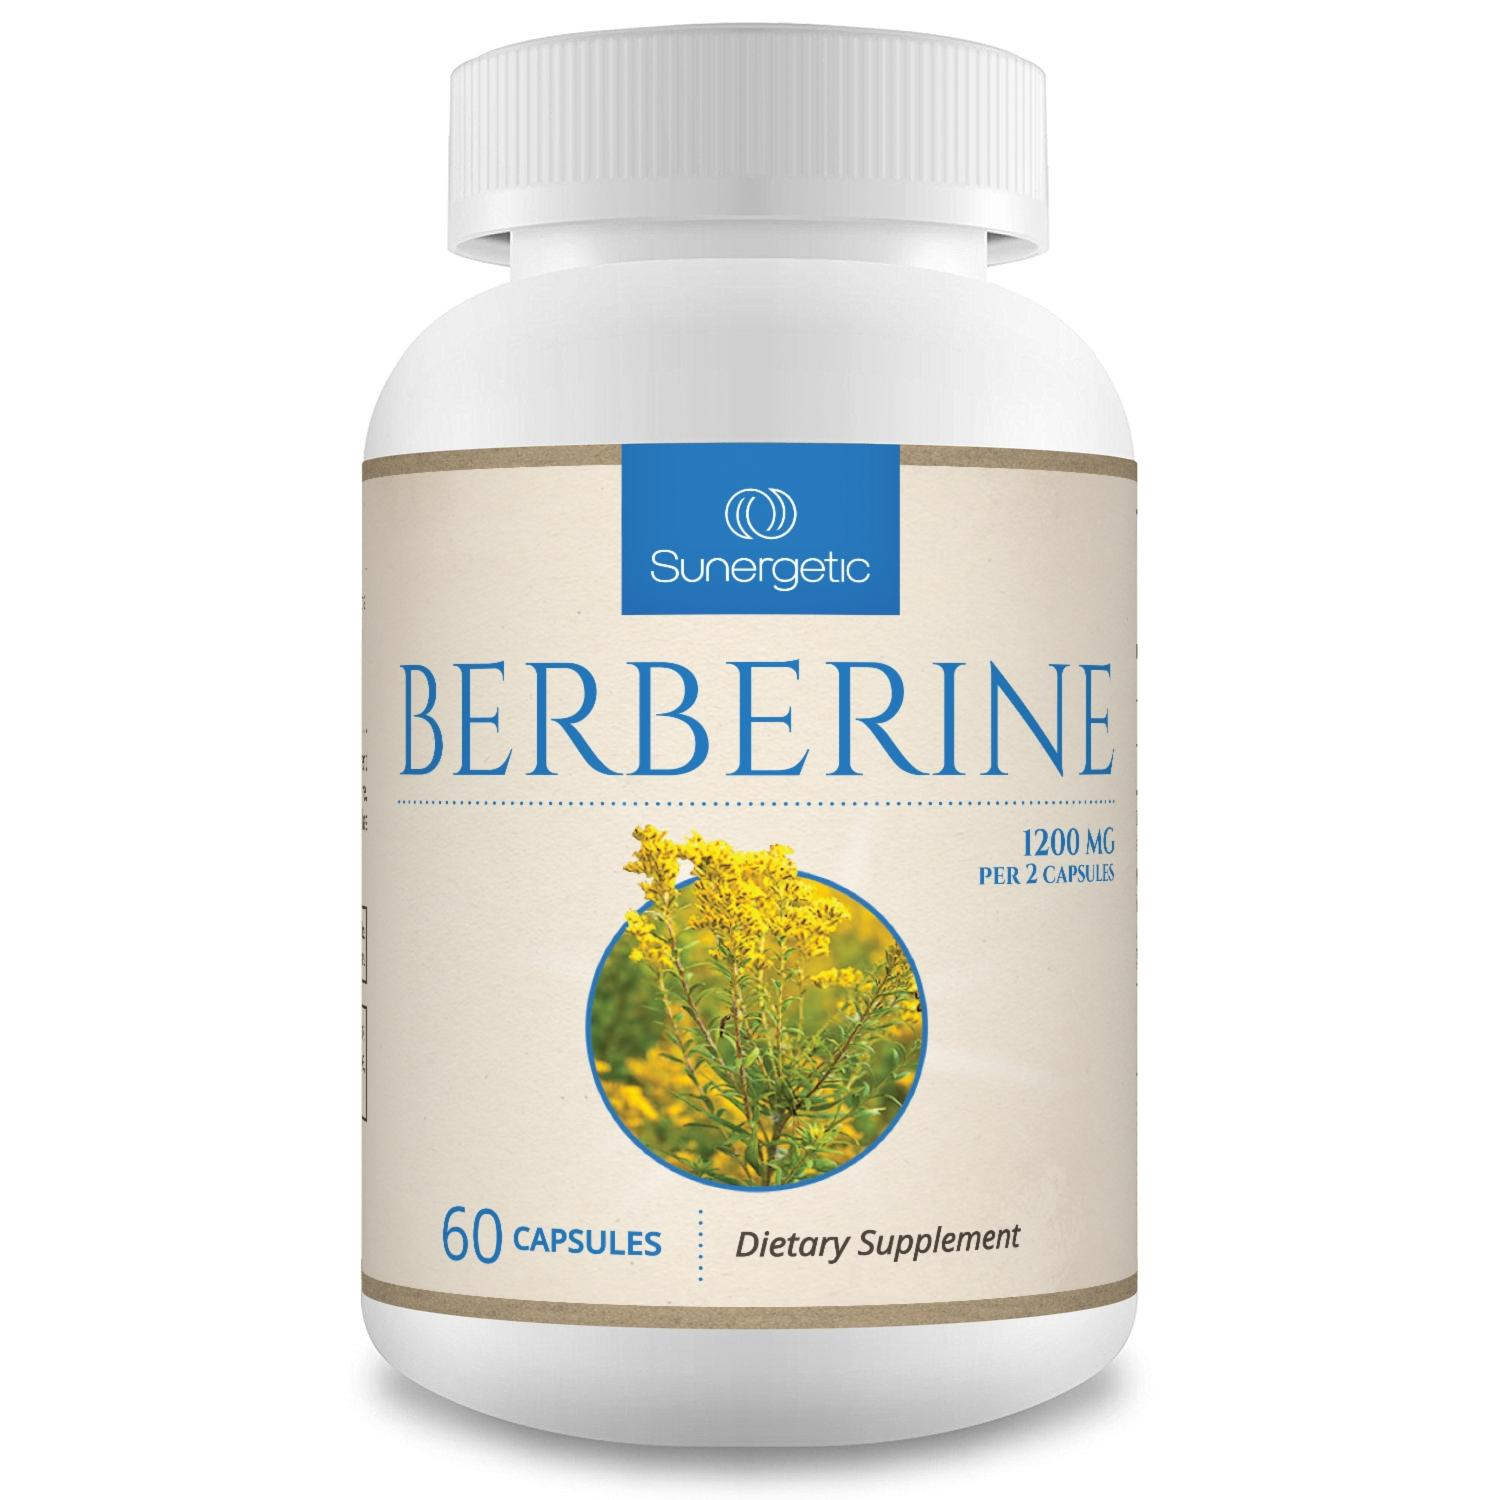 Sunergetic Premium Berberine Supplement